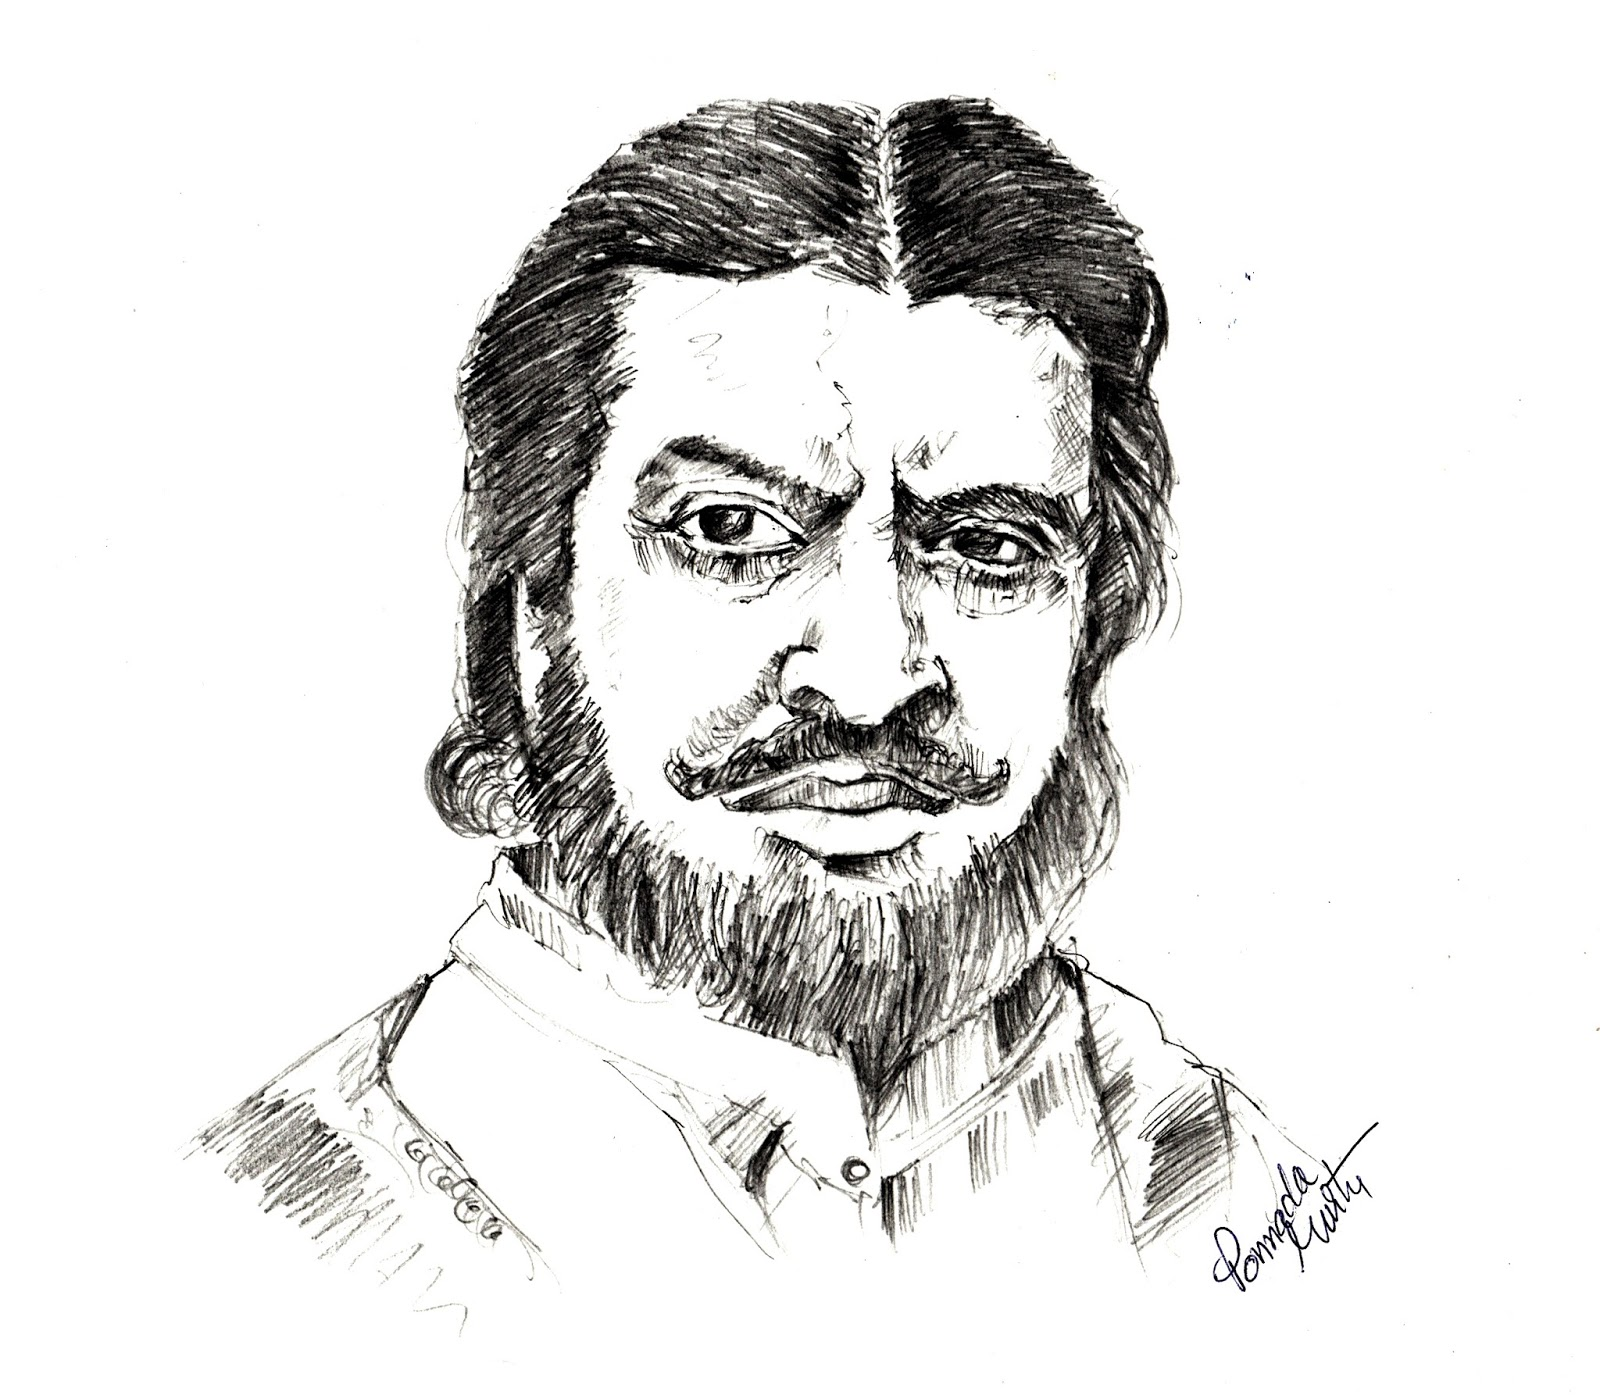 Pran the legendary actor pencil sketch